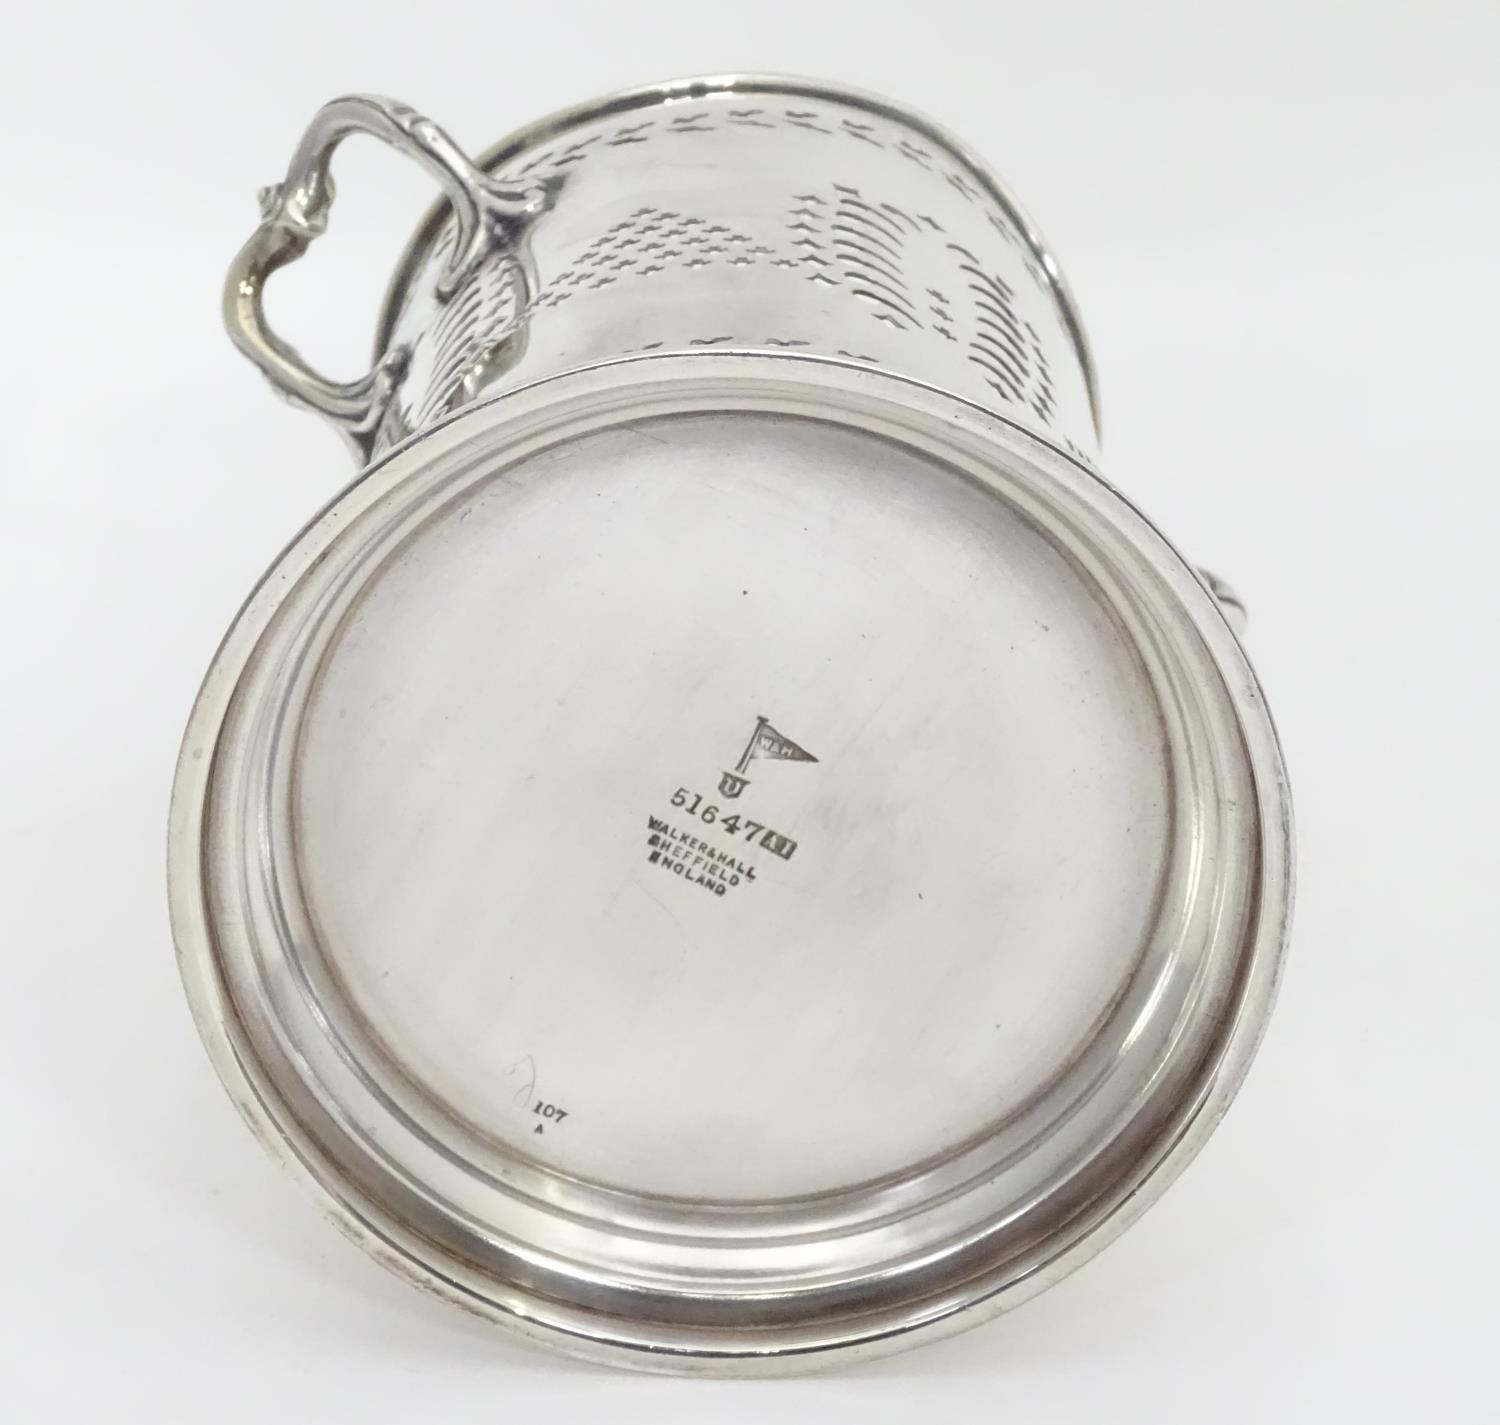 A silver plated siphon bottle holder, maker Walker and Hall Please Note - we do not make reference - Image 5 of 7